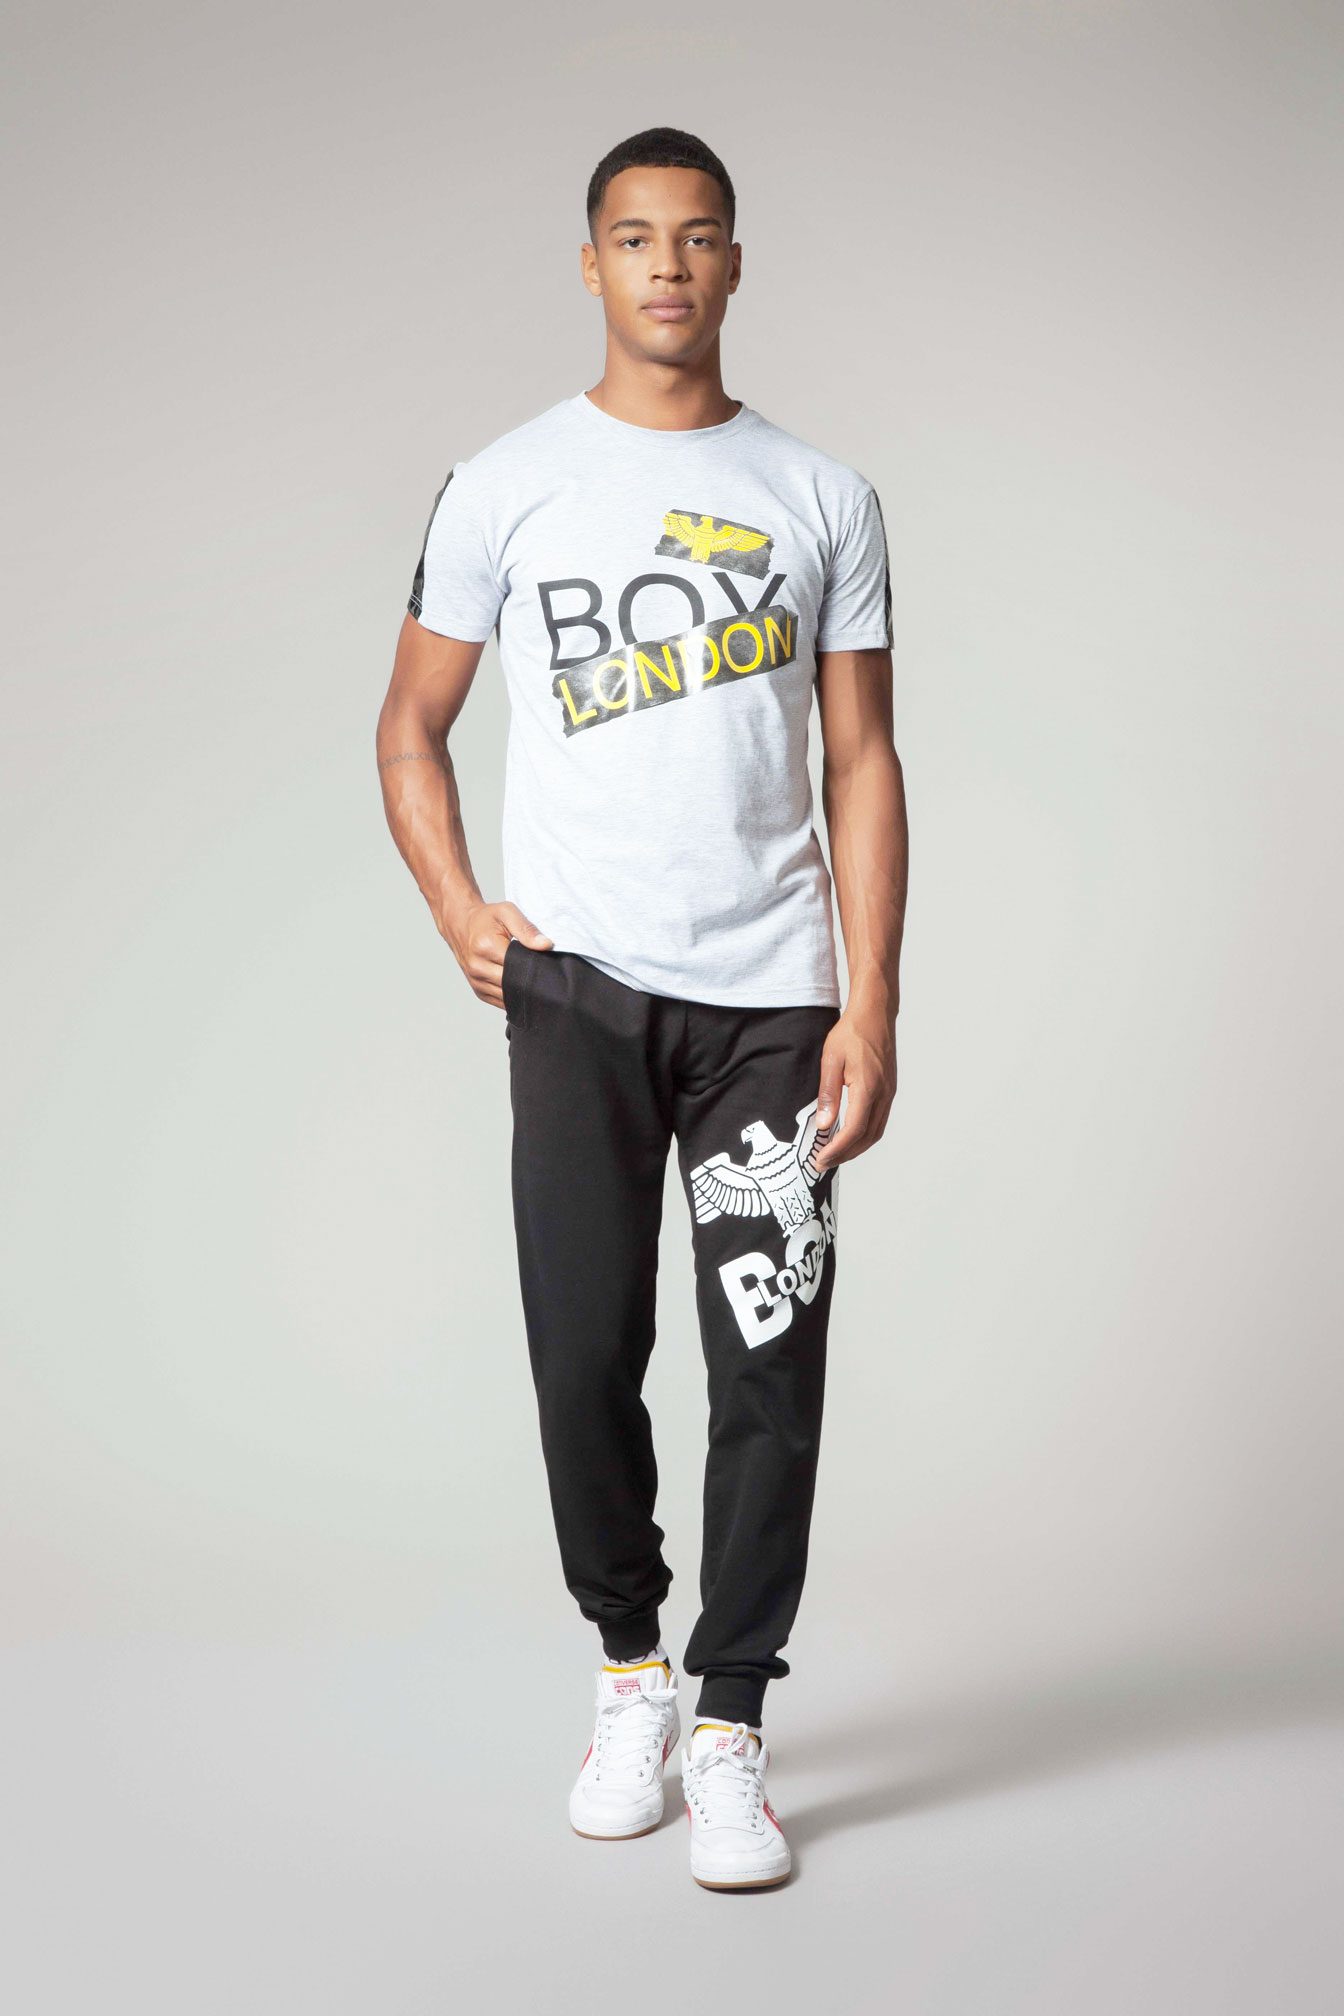 T-SHIRT - BLU6565 - BOY LONDON